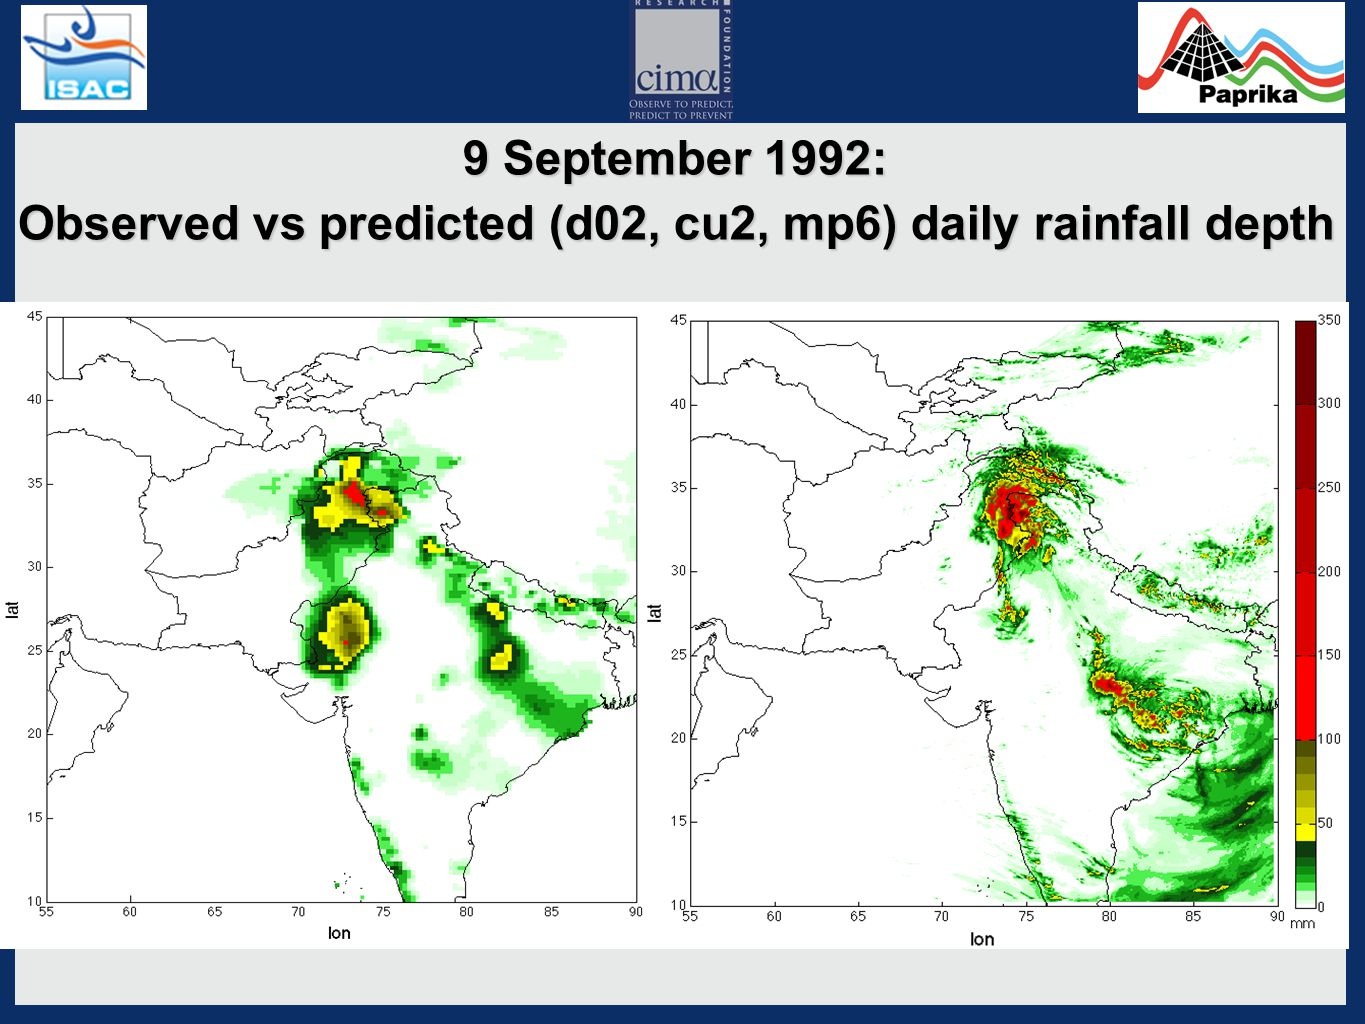 9 September 1992: Observed vs predicted (d02, cu1, mp8) daily rainfall depth